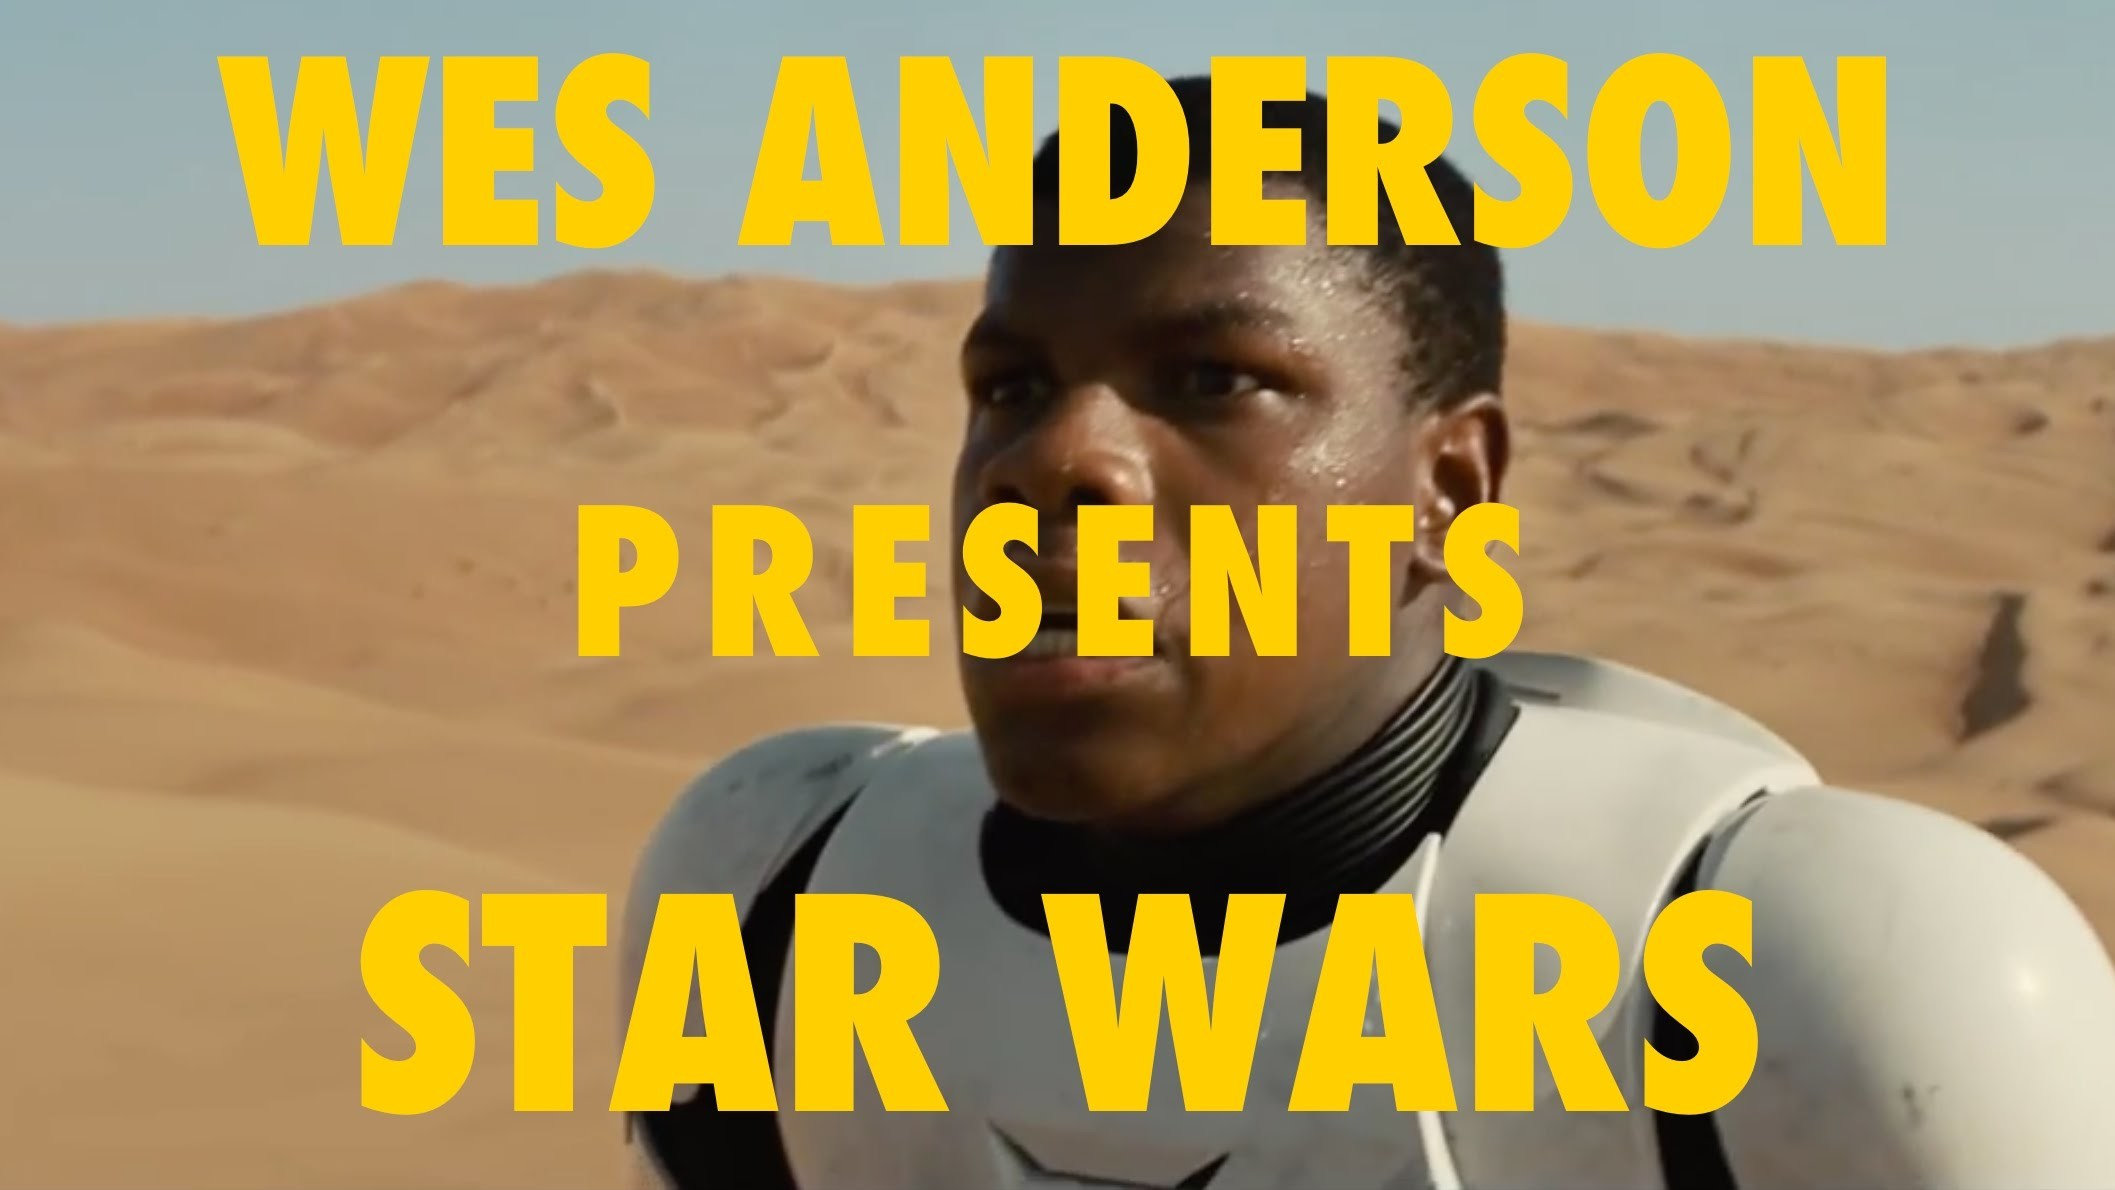 if wes anderson did star wars: watch this trailer re-imagining